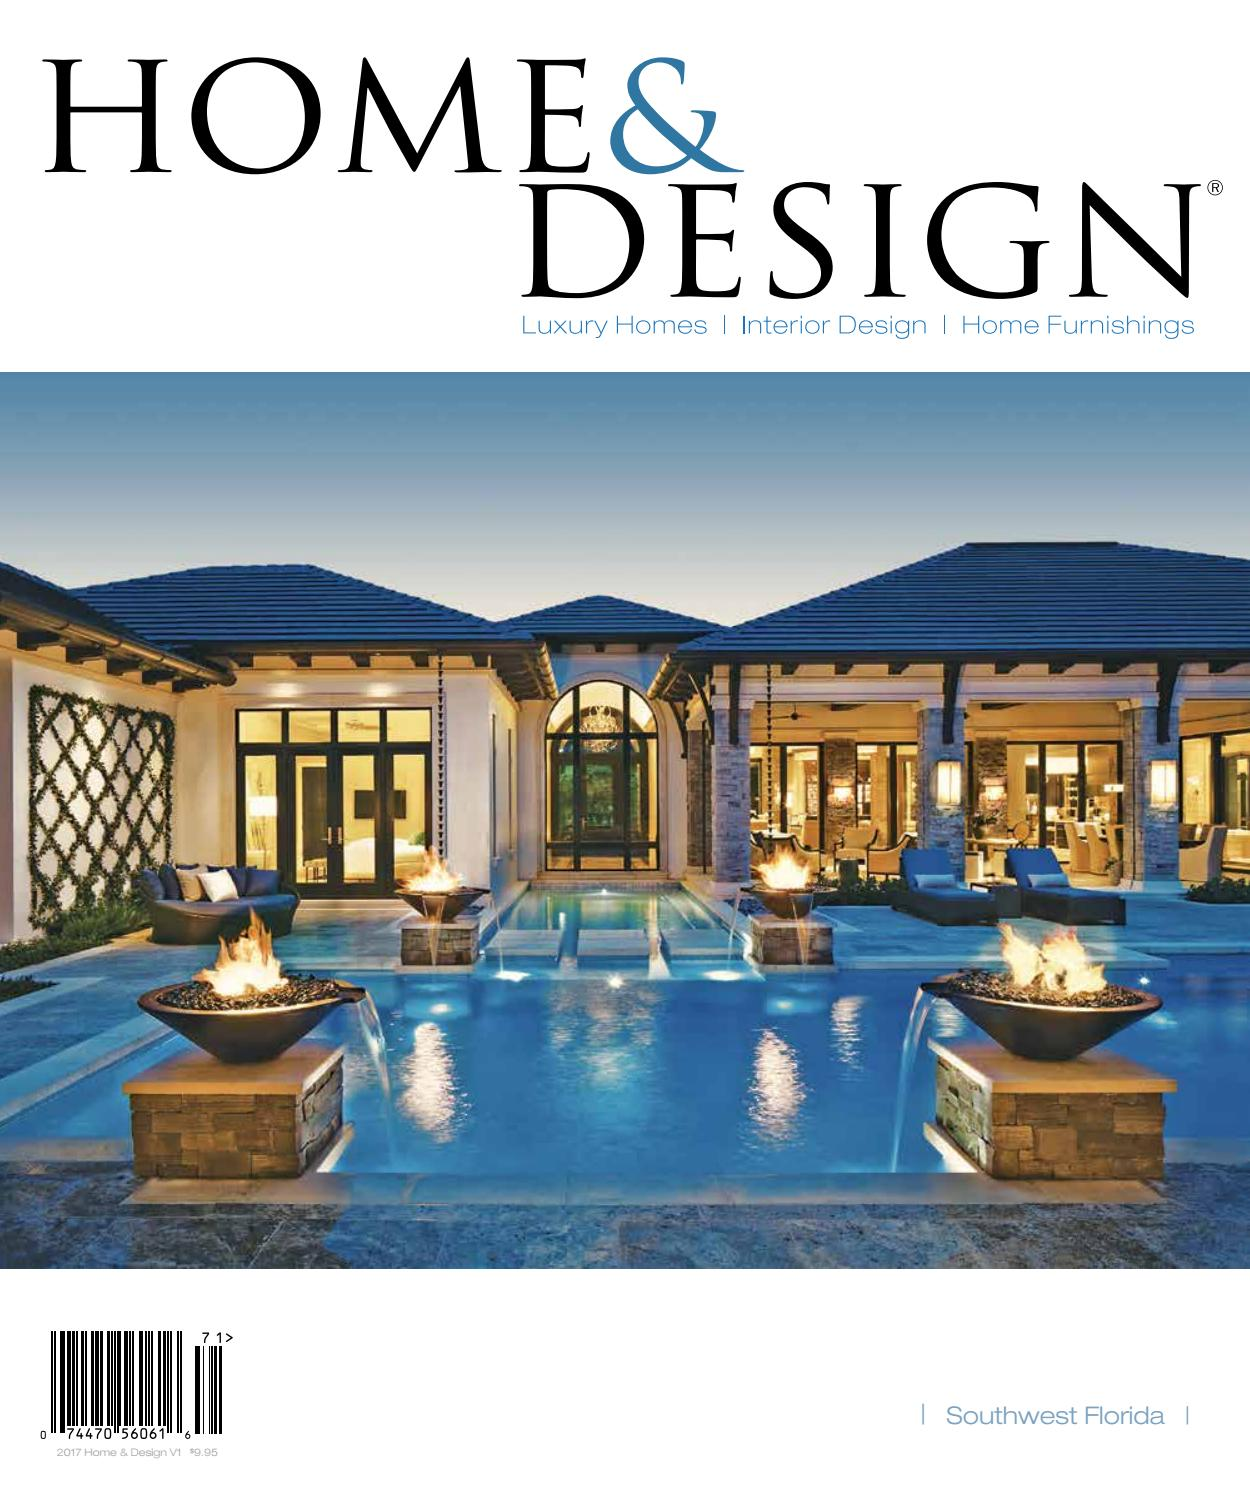 home design magazine 2017 southwest florida edition by jennifer evans issuu